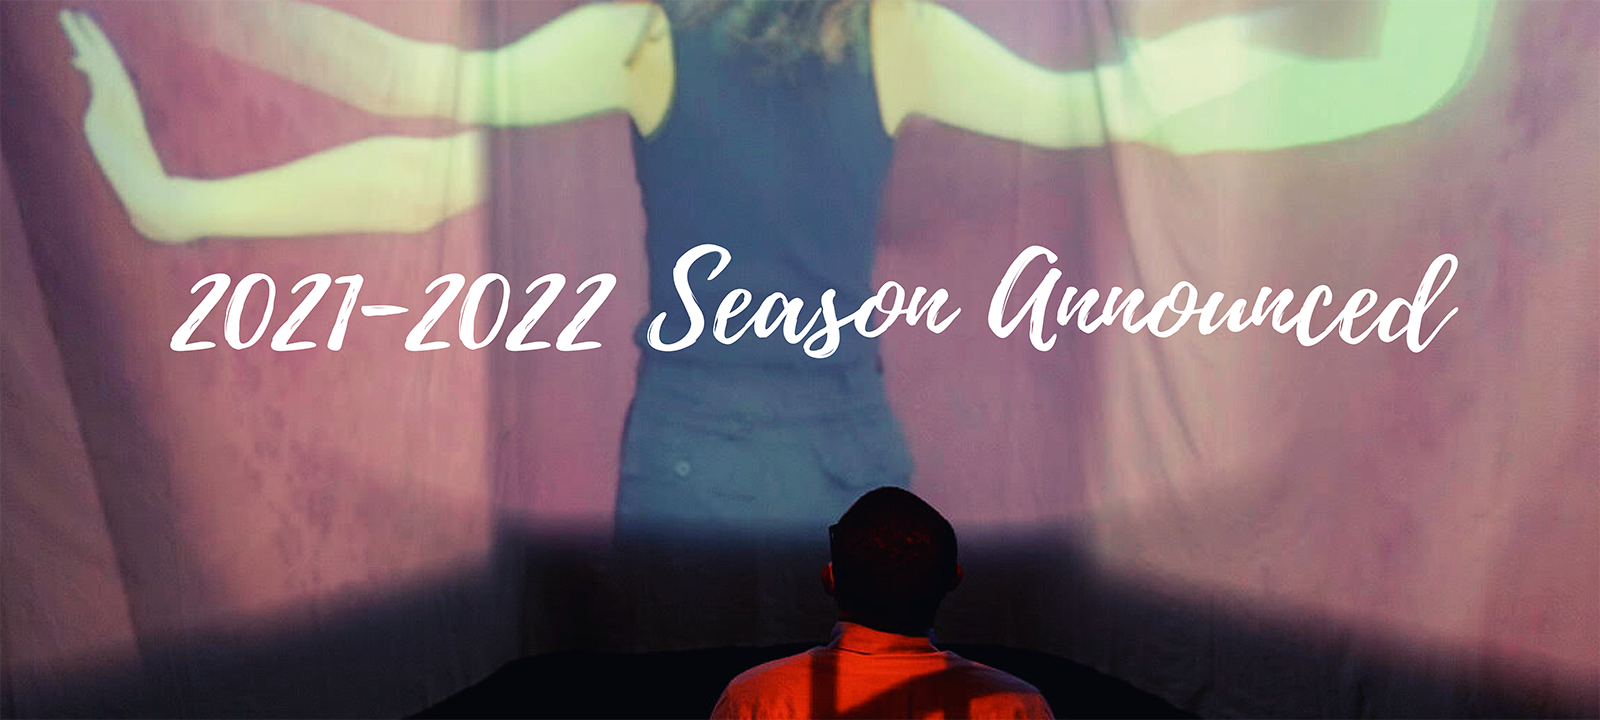 Loyola Department of Theatre Arts and Dance Announces the 2020-2021 Season